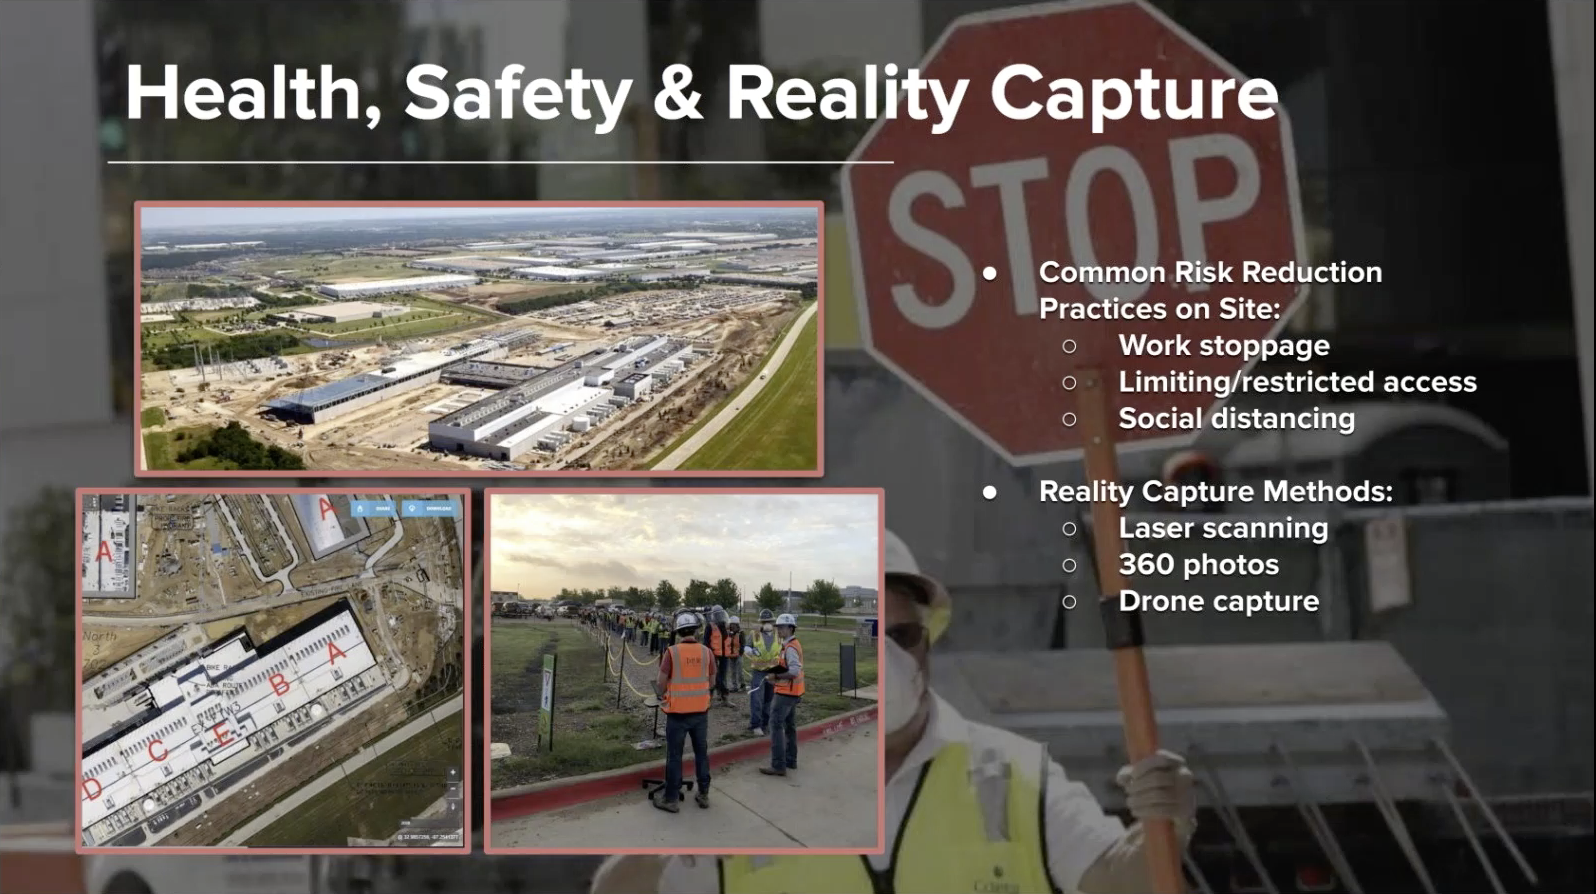 Health, Safety, and Reality Capture